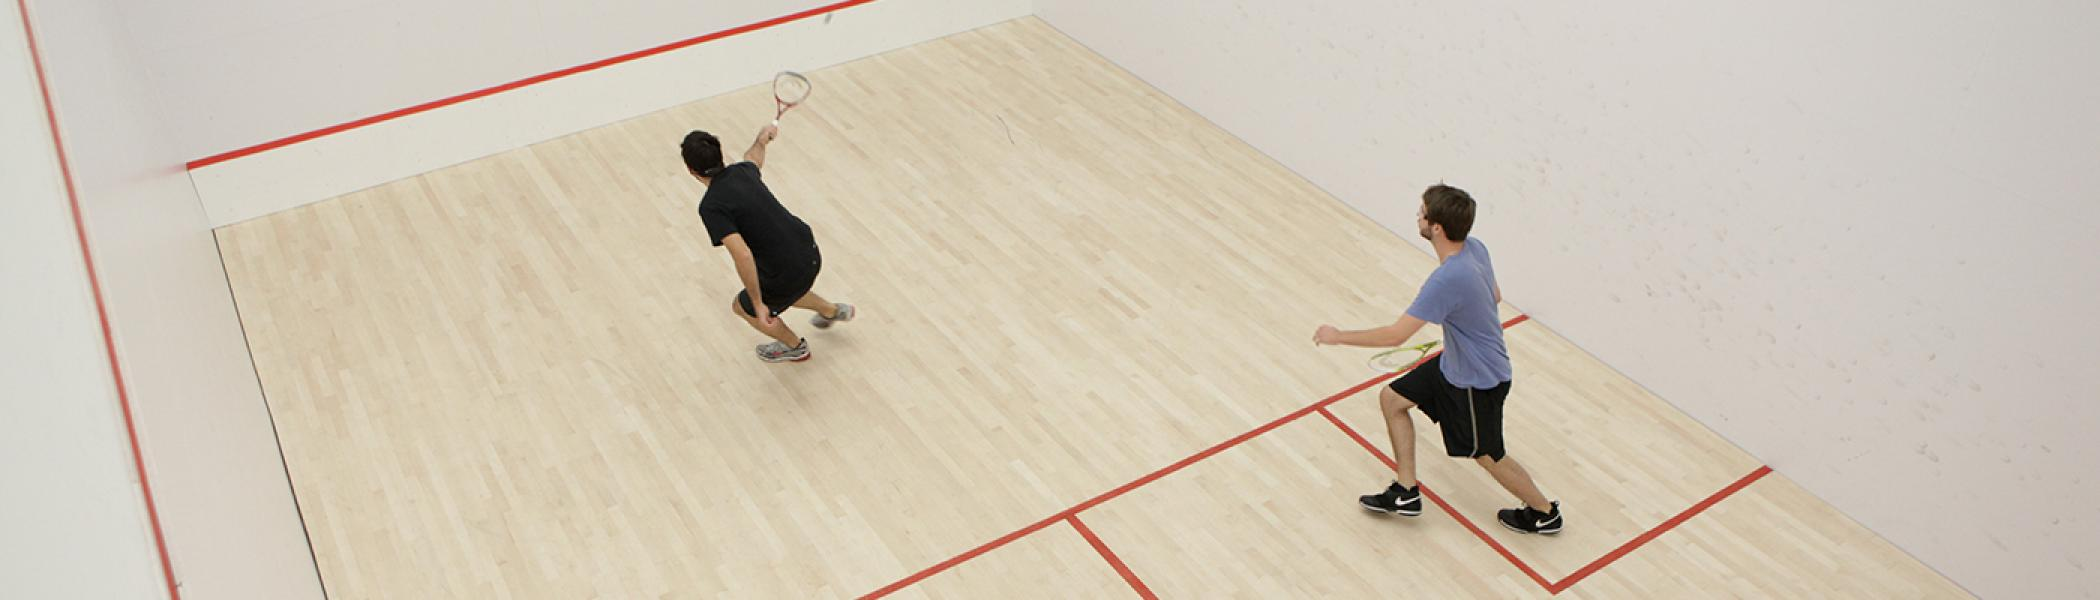 Two men playing squash on squash court